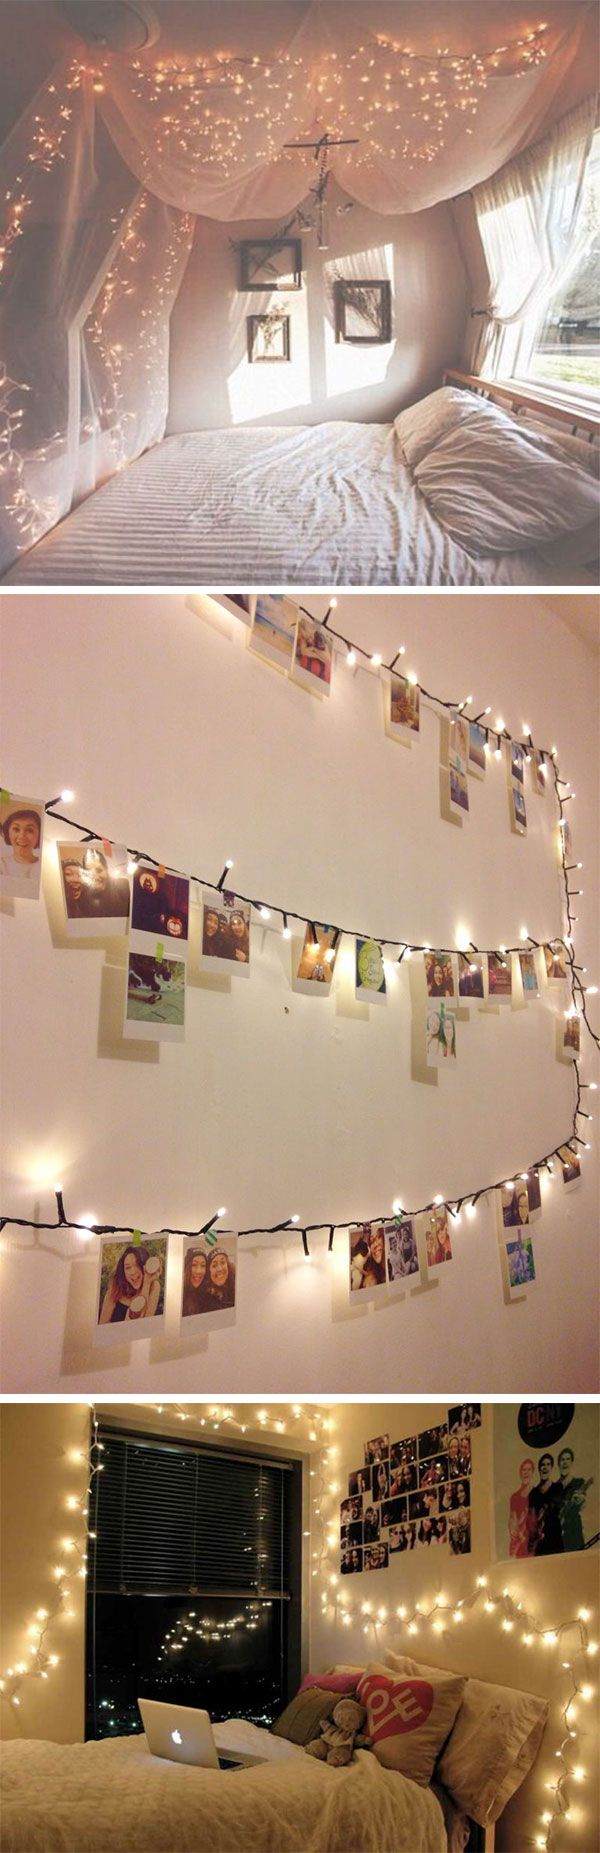 25 best fairy lights ideas on pinterest room lights bedroom 13 ways to use fairy lights to make your home look magical